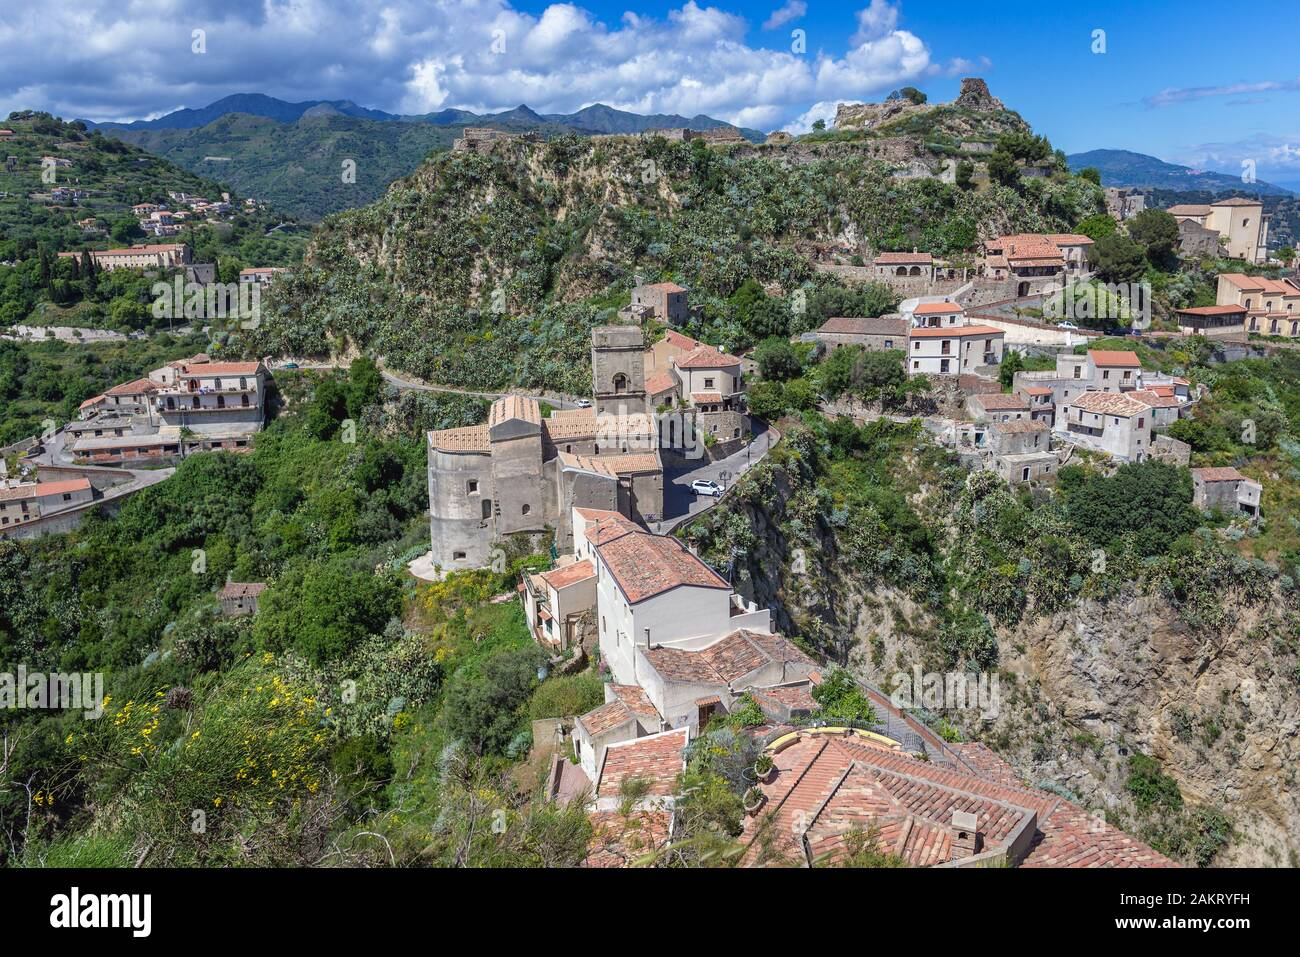 Savoca village on Sicily Island in Italy - view with ruins of Pentefur castle on a hill and Chiesa Madre di Savoca church on foreground Stock Photo